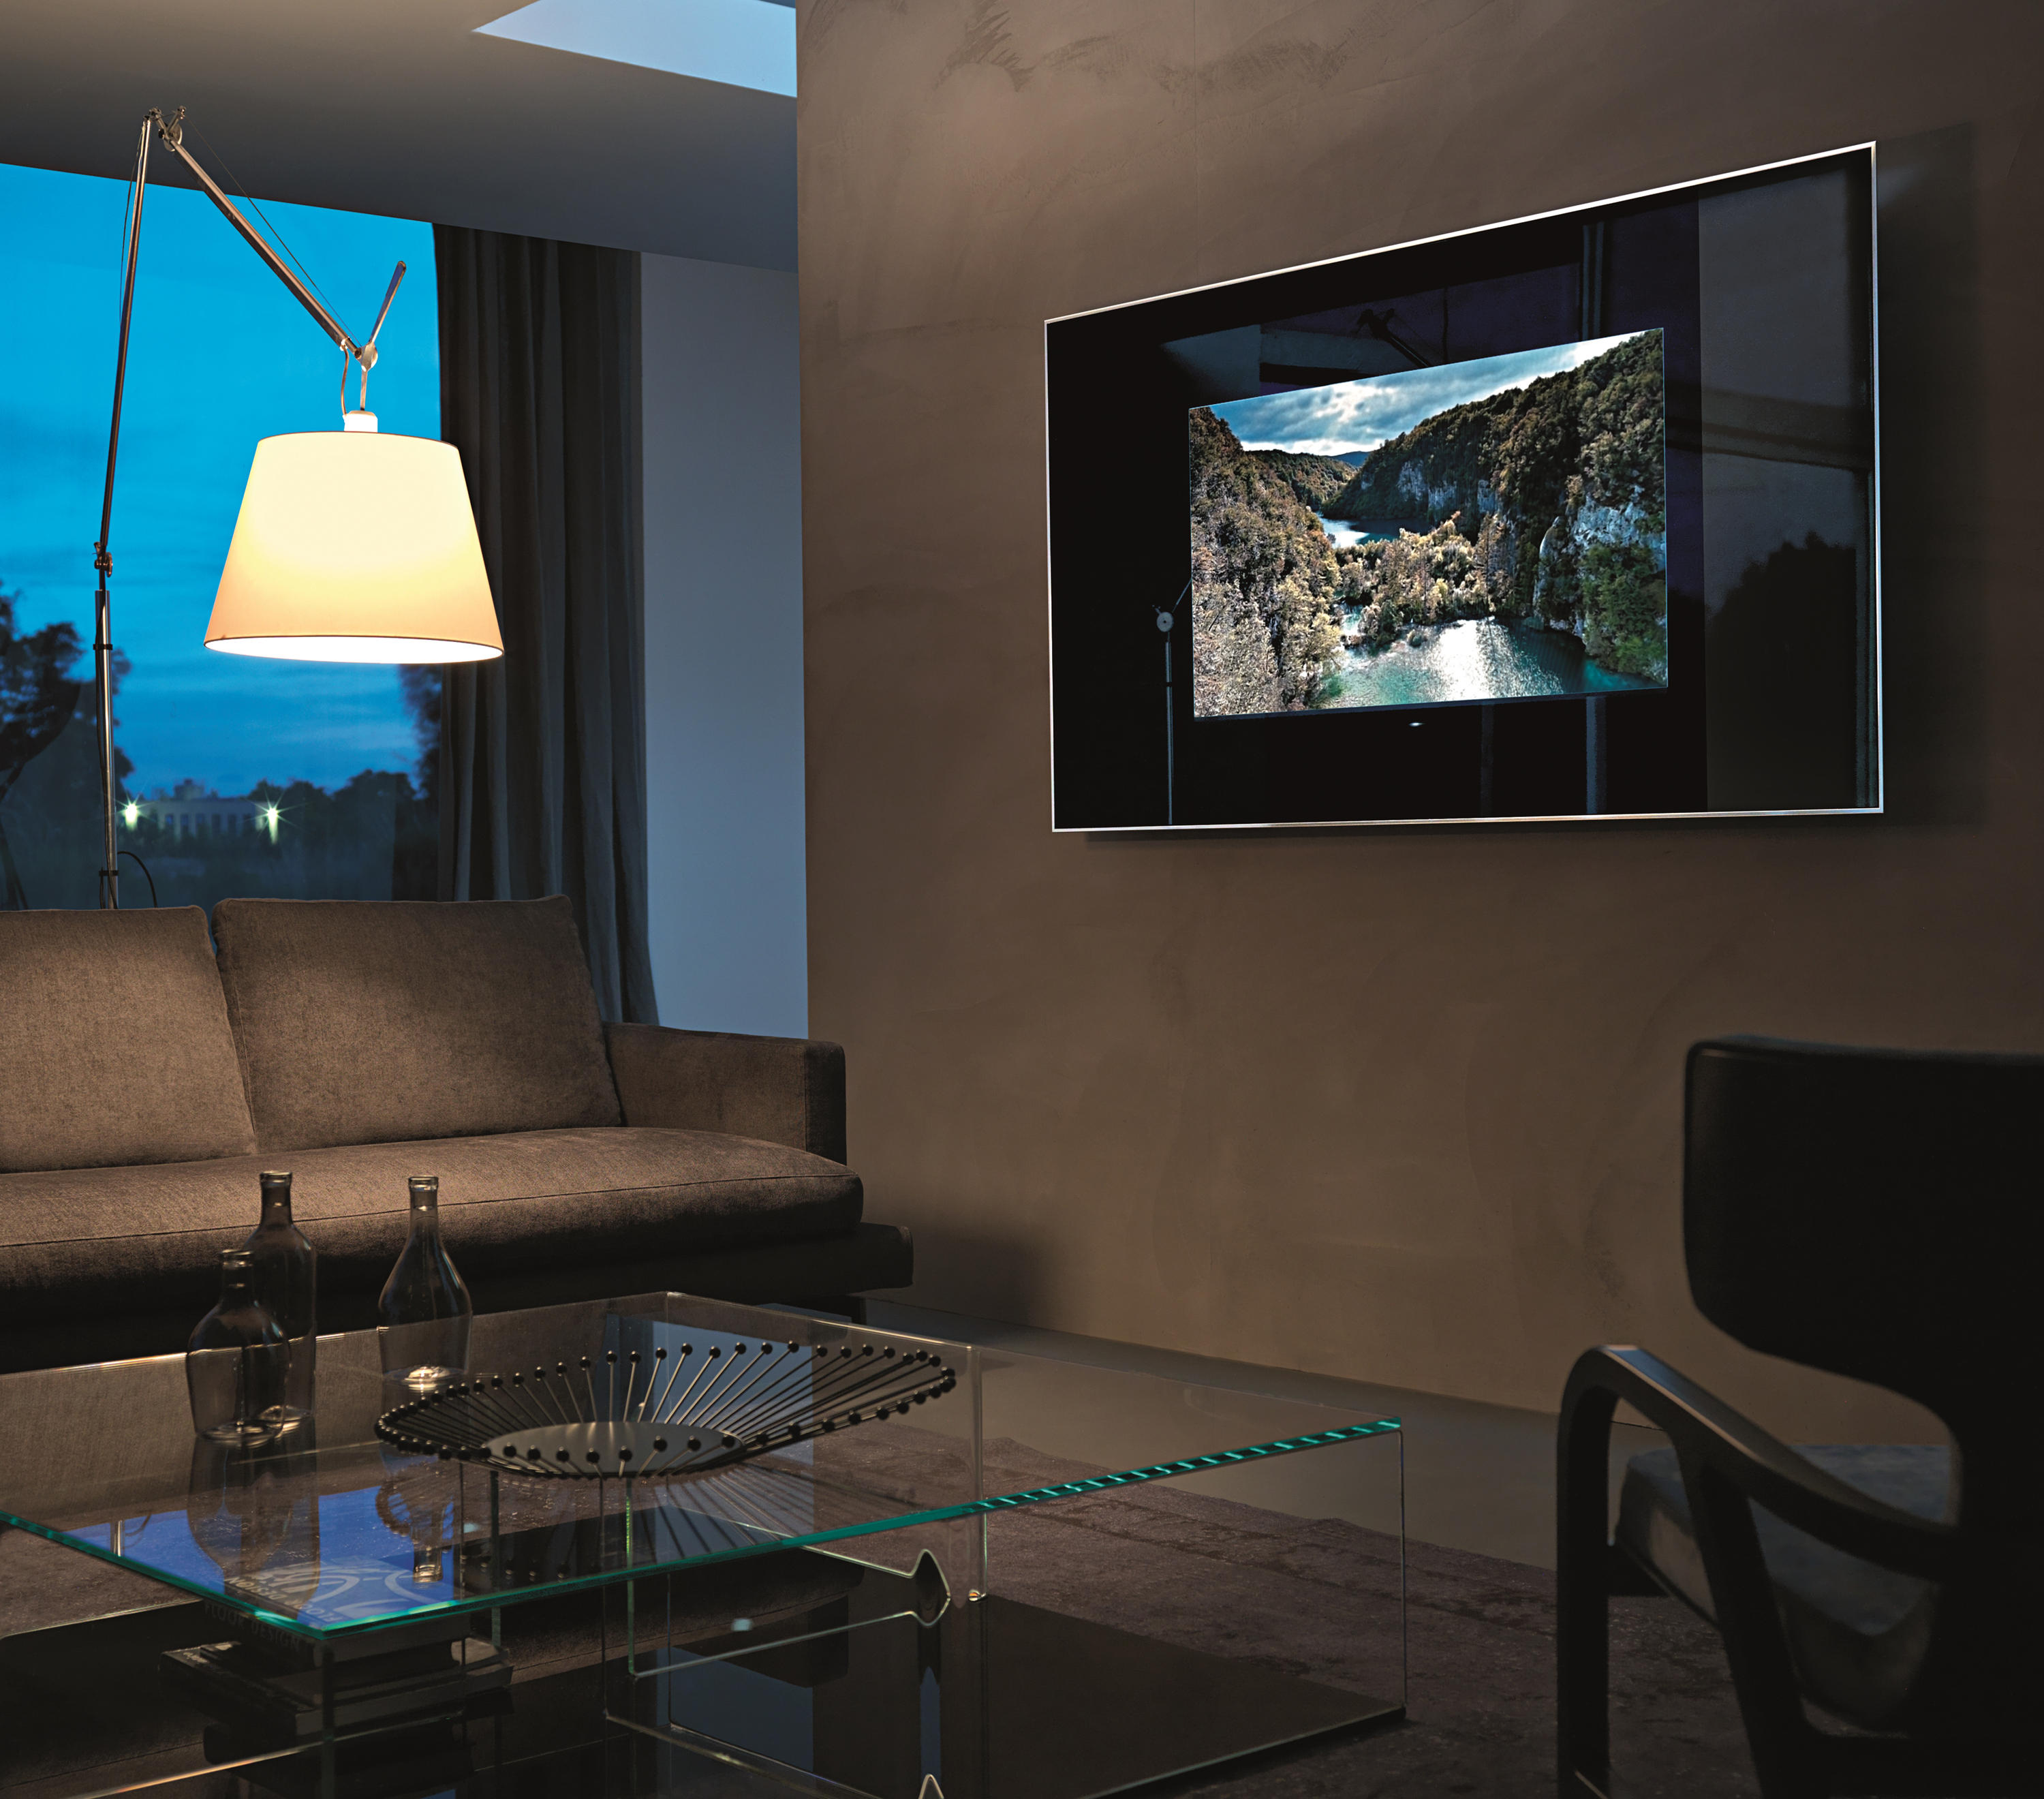 Mirage tv spiegel von fiam italia architonic for Spiegel tv download videos